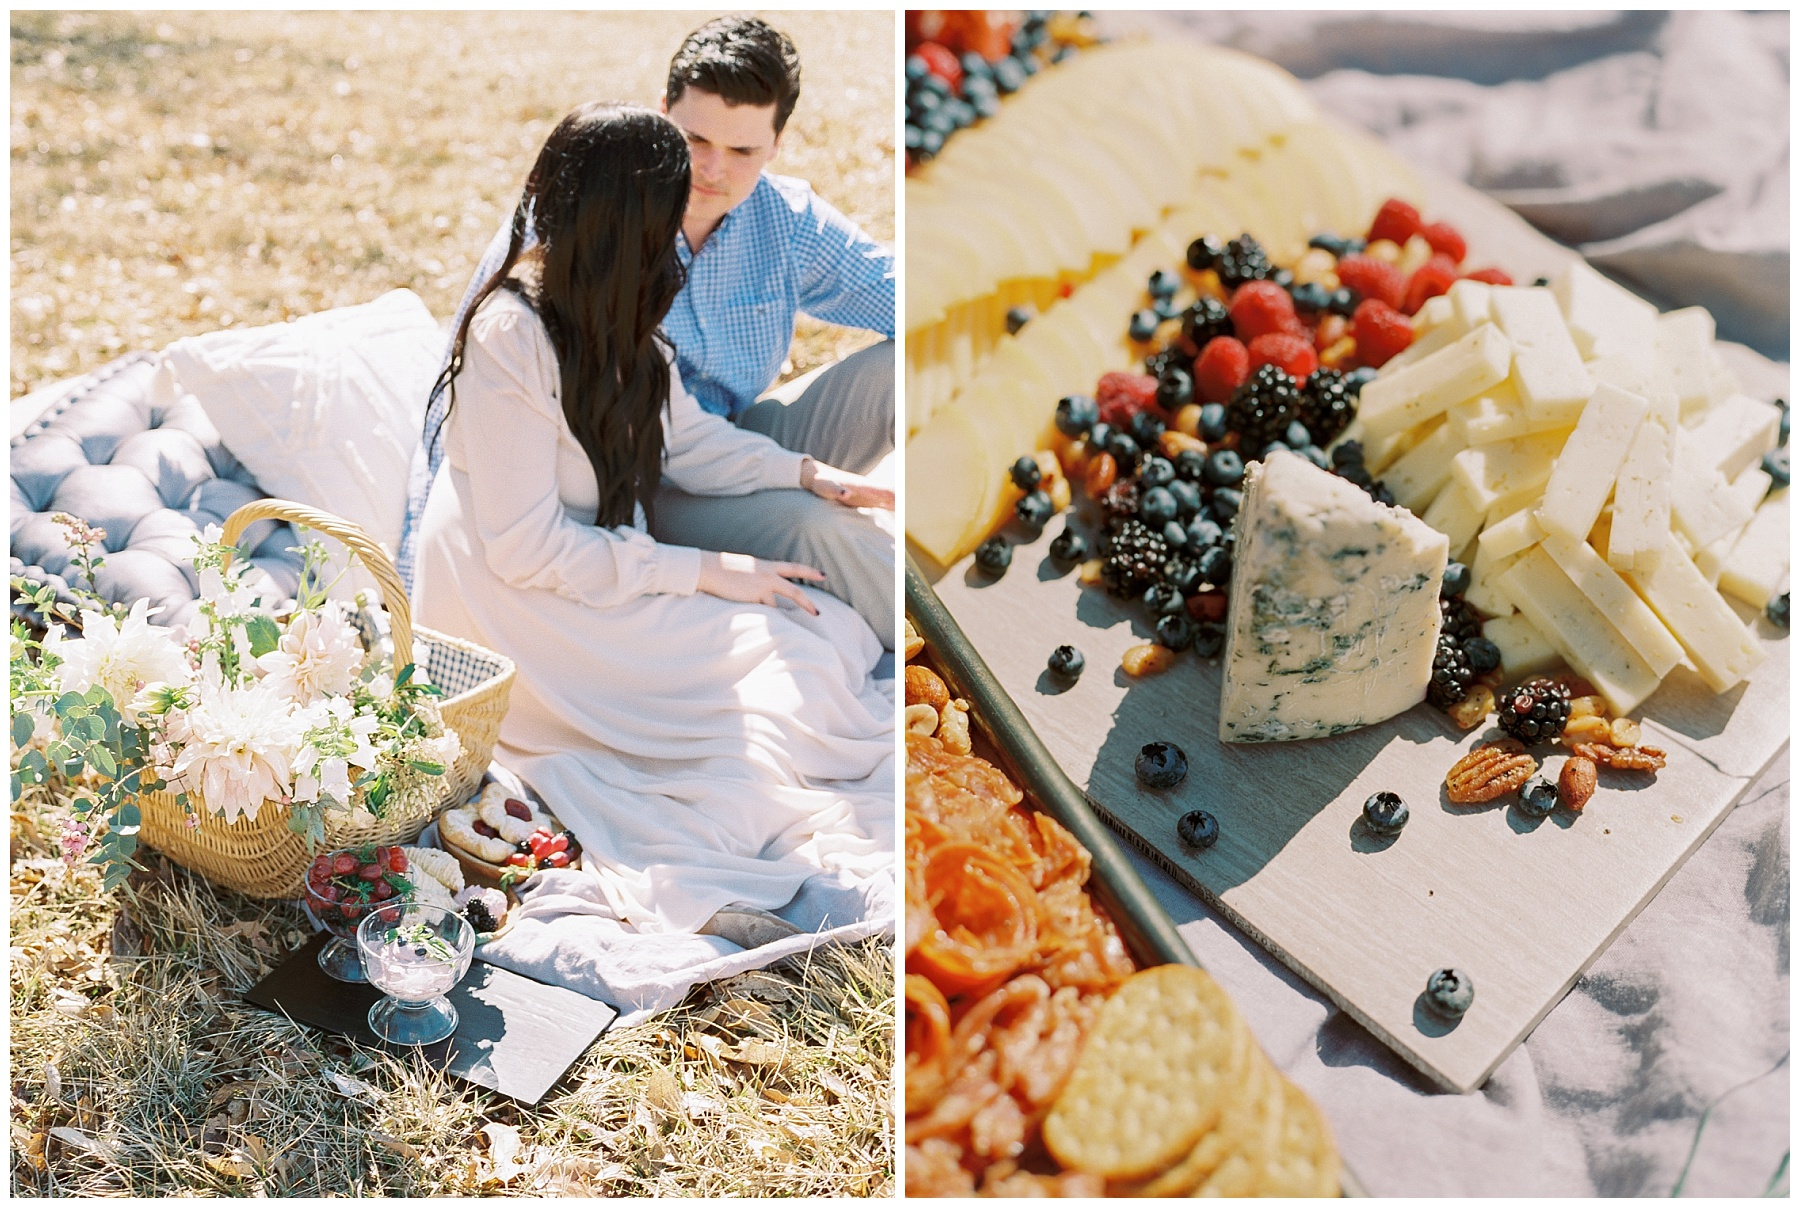 Late Fall Farm-to-table Inspired Brunch Picnic Engagement Session During Wedding Weekend by Kelsi Kliethermes Photography Best Missouri and Maui Wedding Photographer_0020.jpg